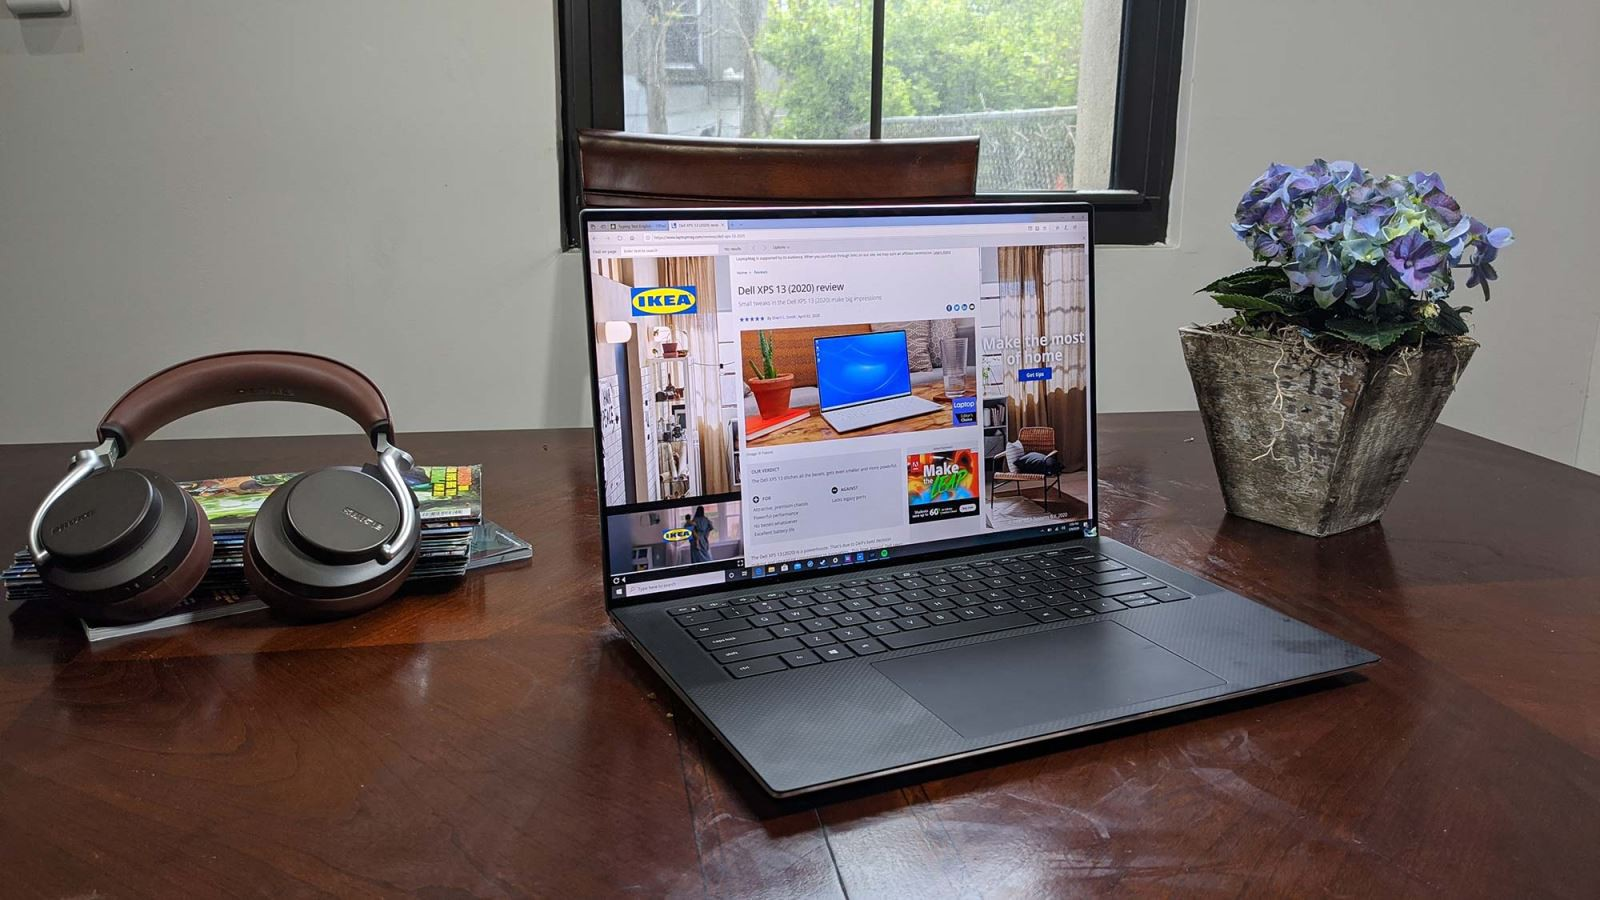 So sánh Dell XPS 15 2020 với MacBook Pro 16 inch 09